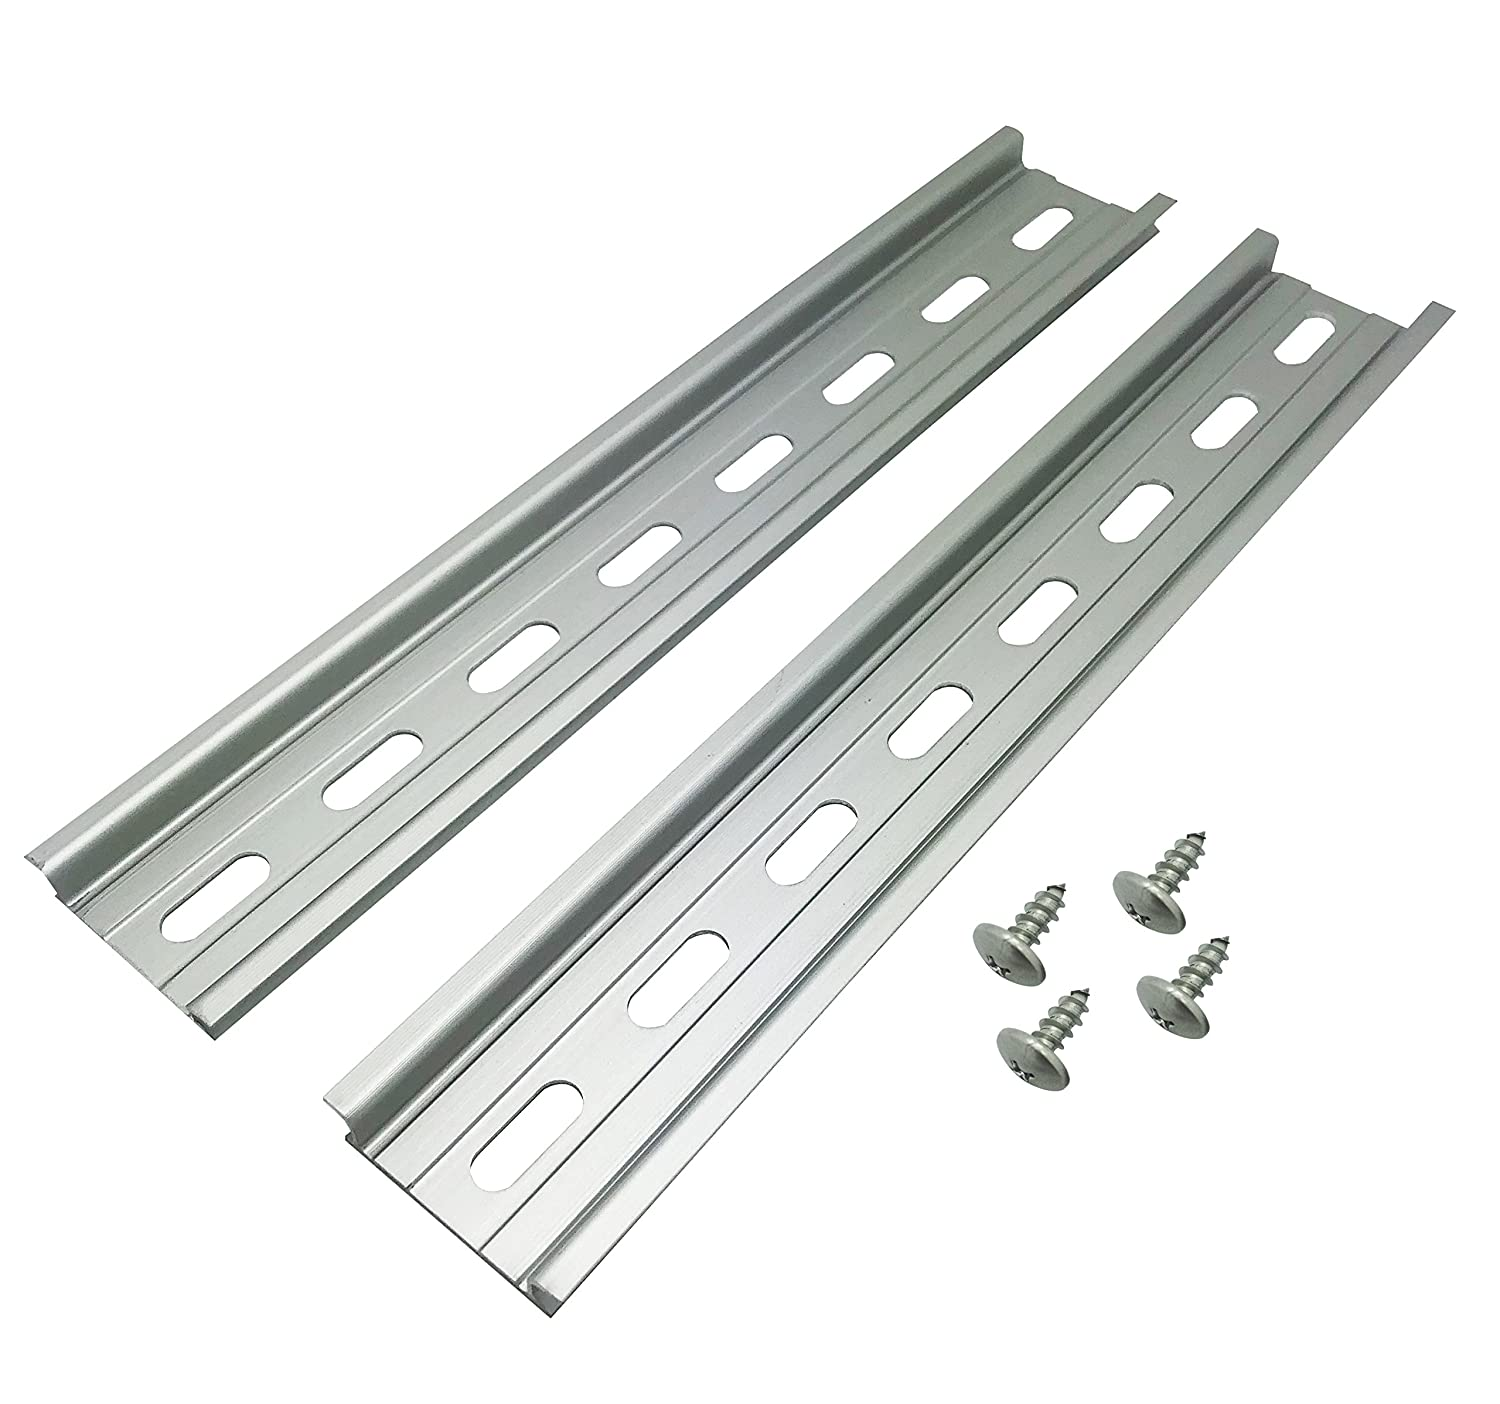 Electrodepot Slotted Aluminum DIN Rail, 35mm x 8\', Silver - 2 Pieces with 4#10 Stainless Steel Screws 35mm x 8